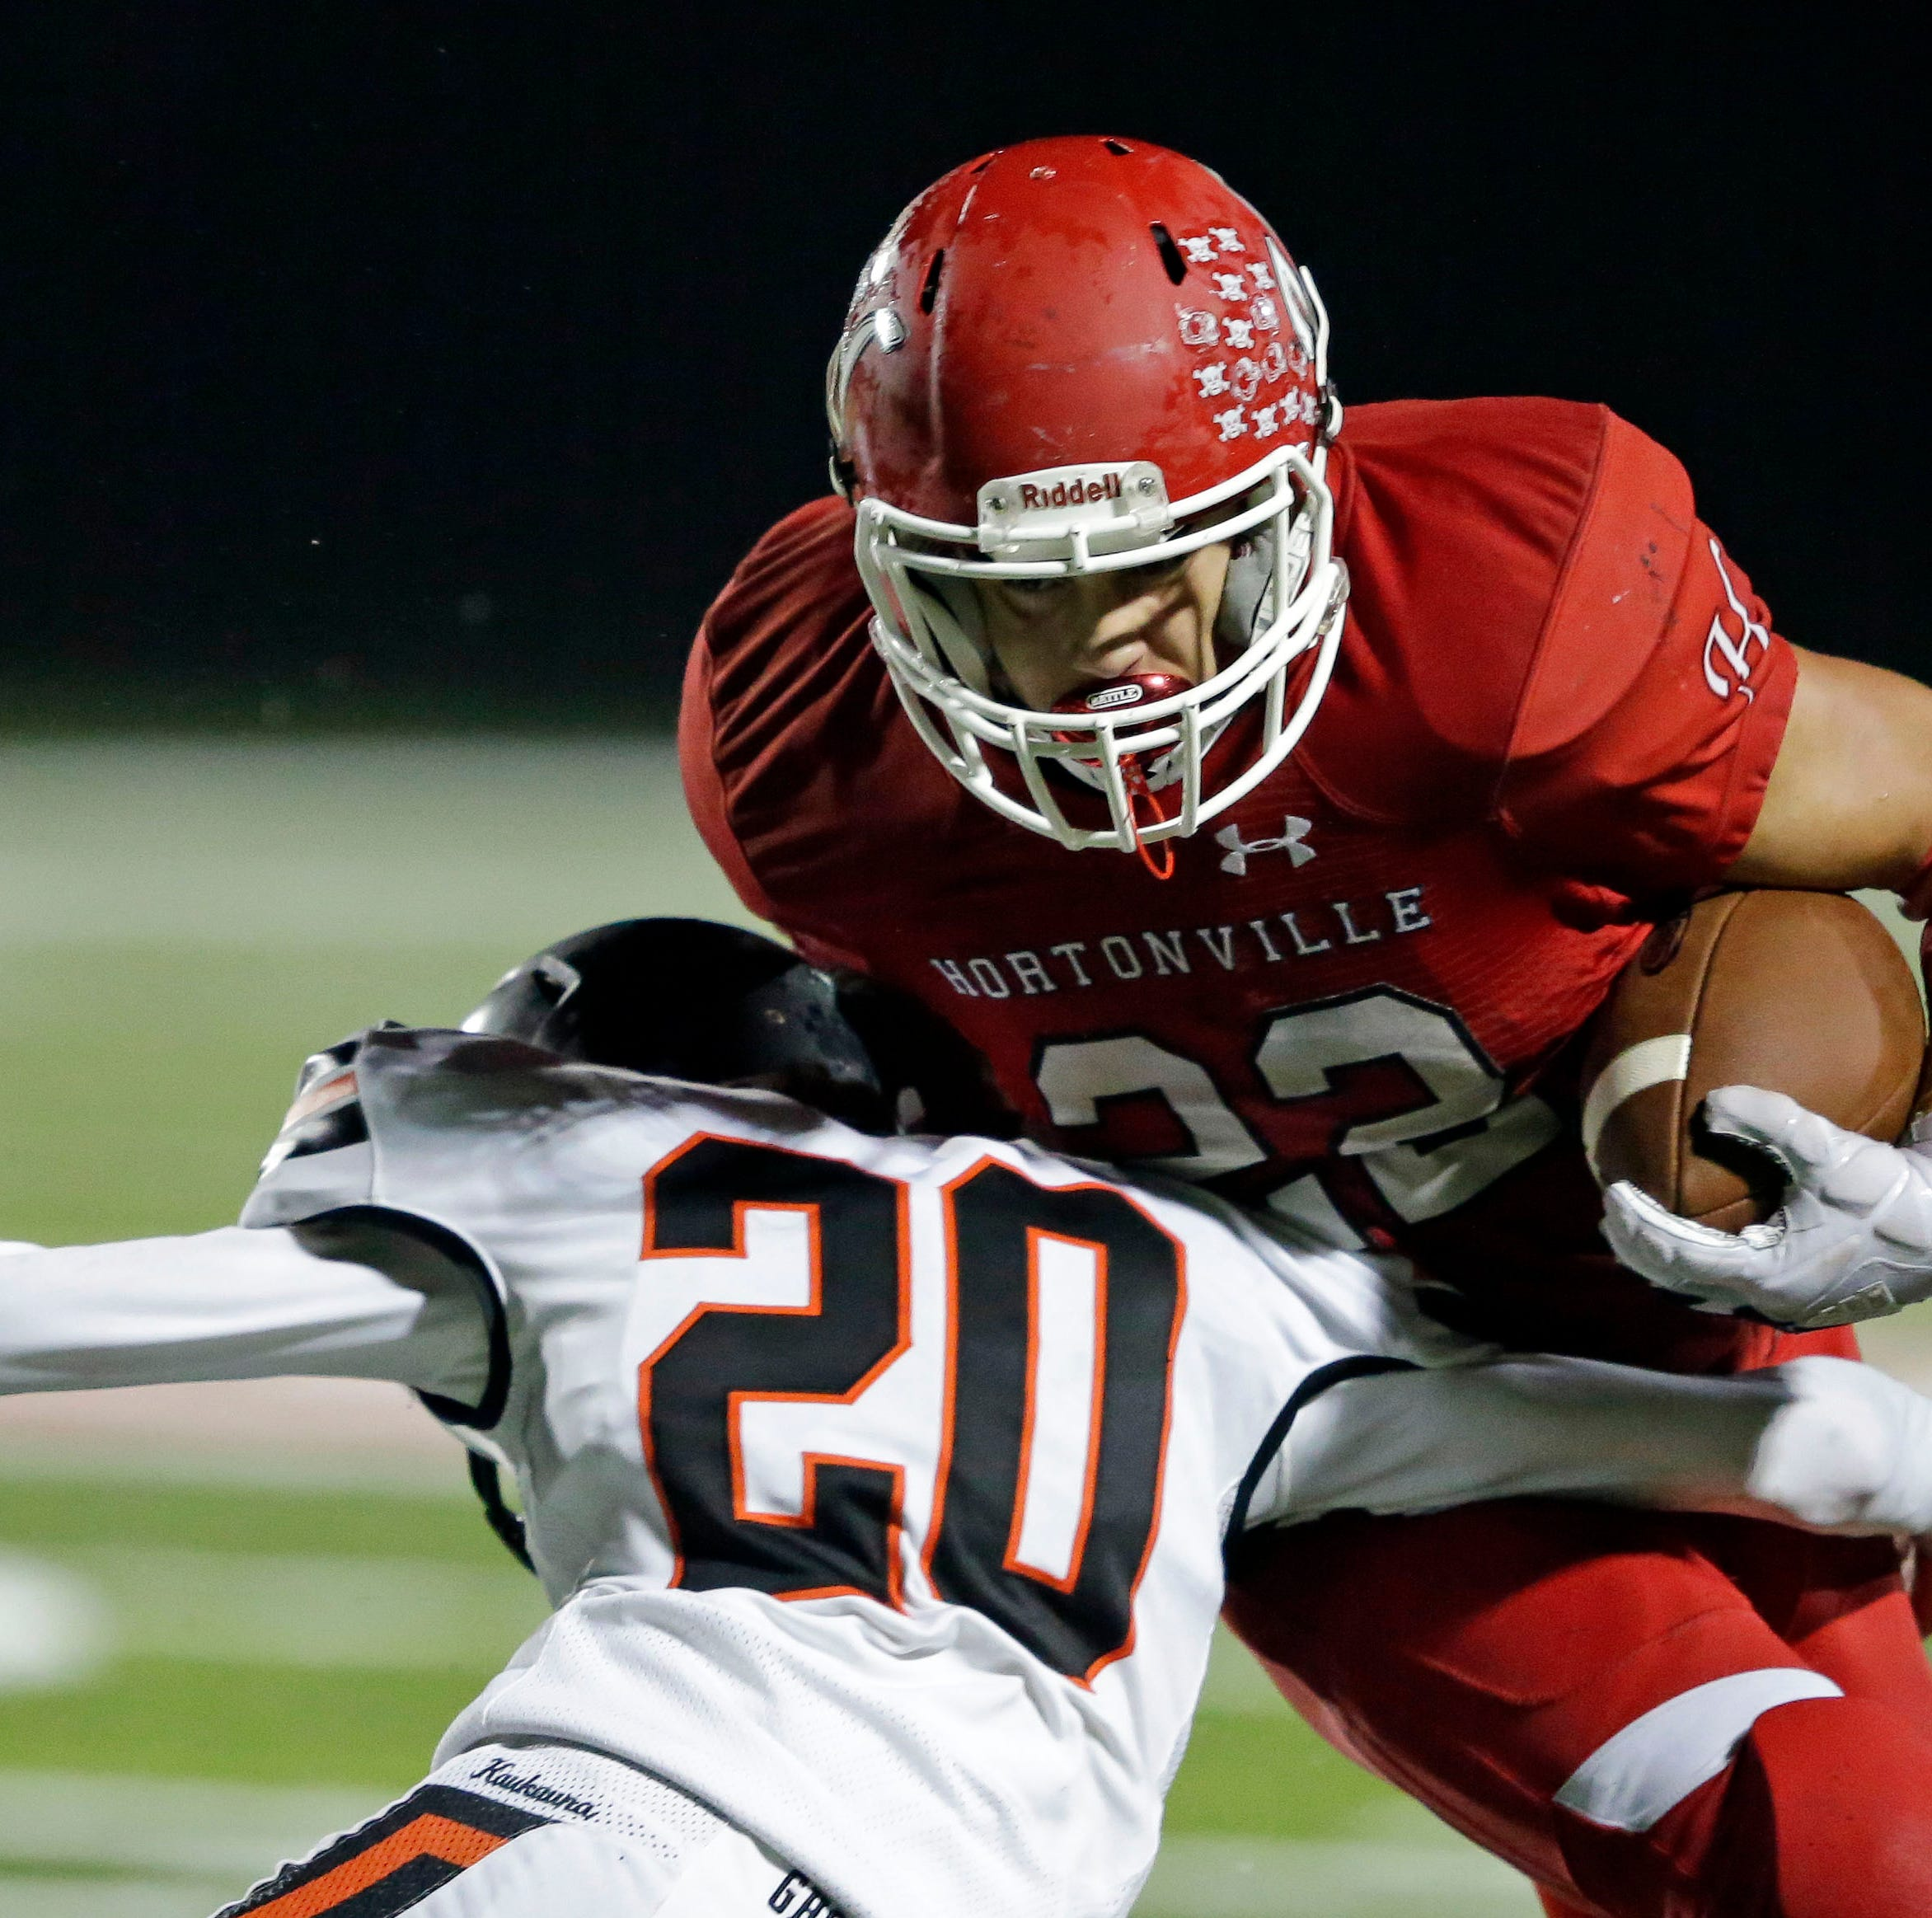 WIAA football: Top 10 games of the first round of the playoffs